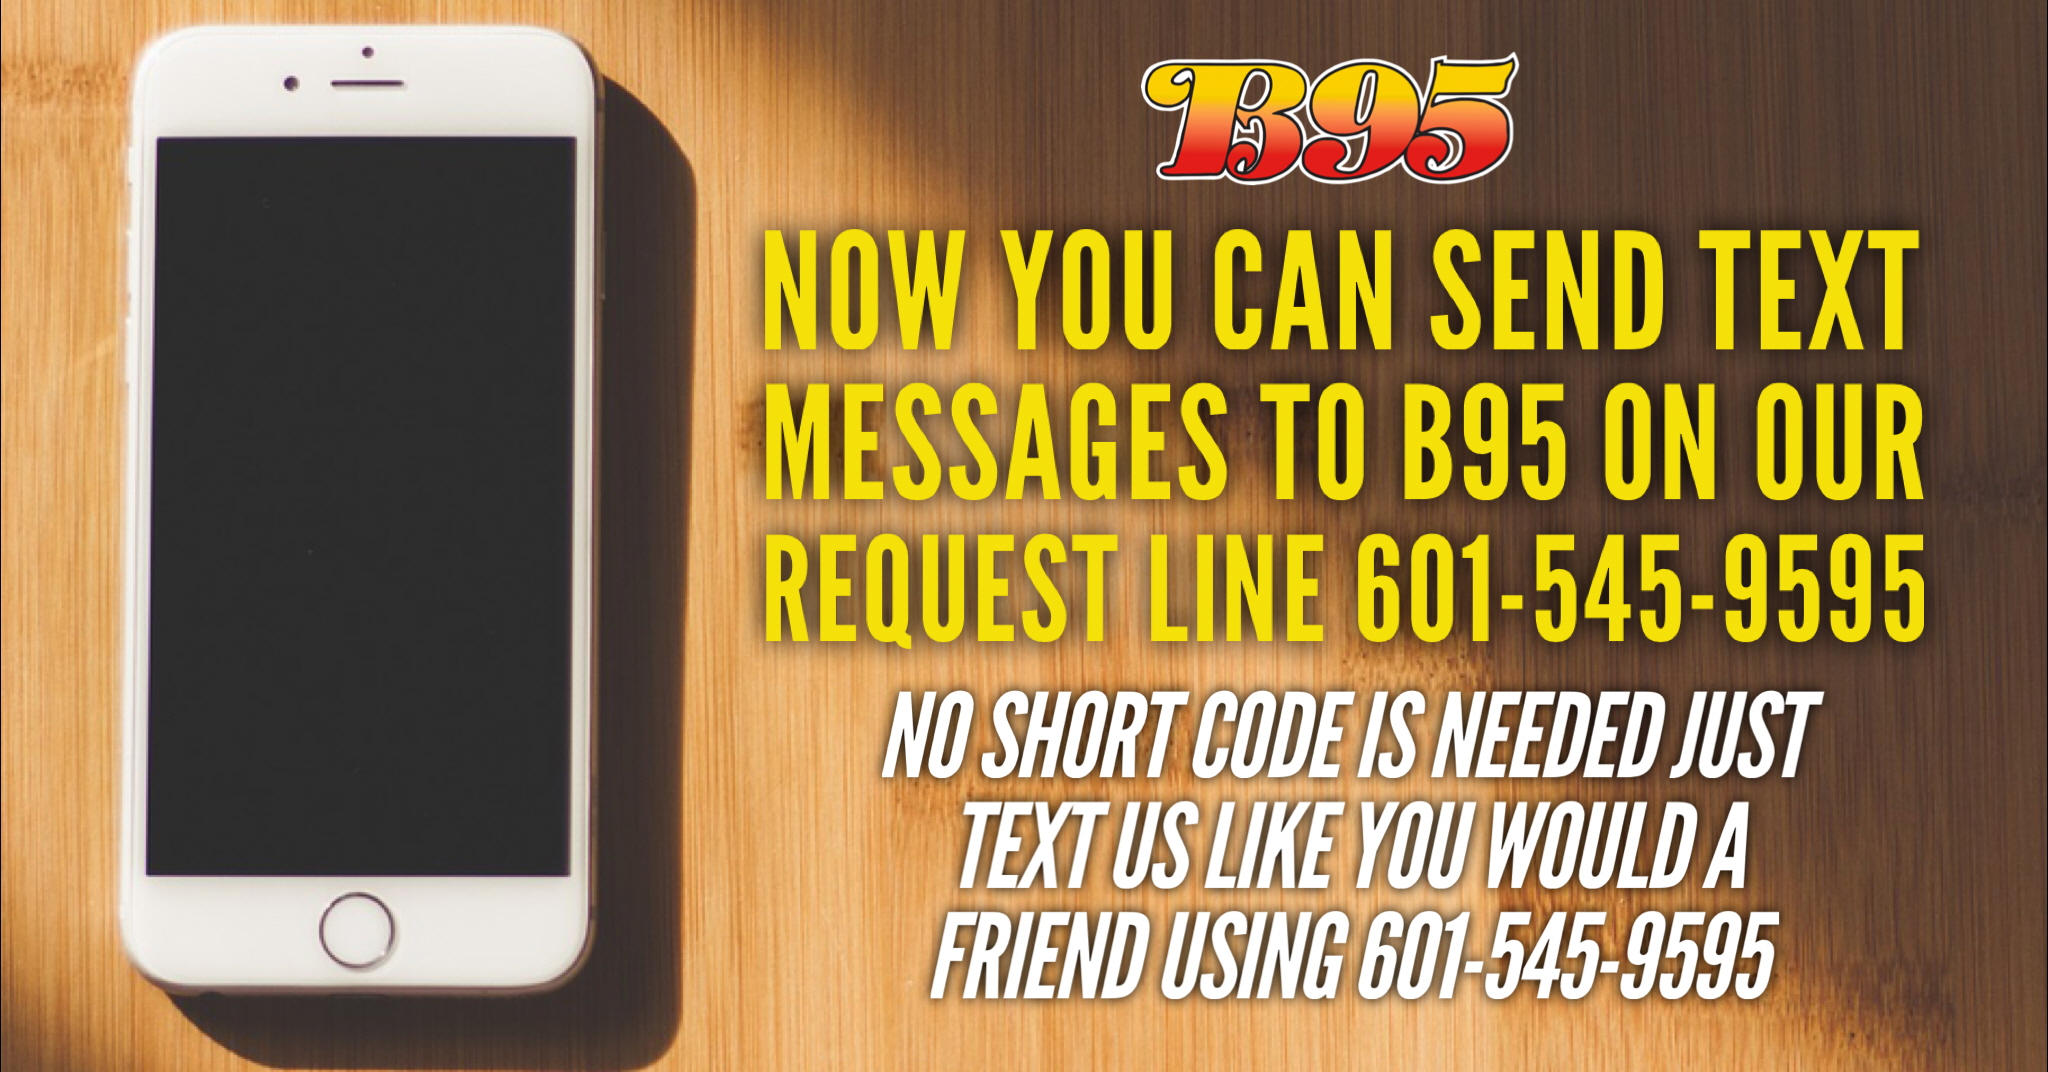 Text us at 601-545-9595